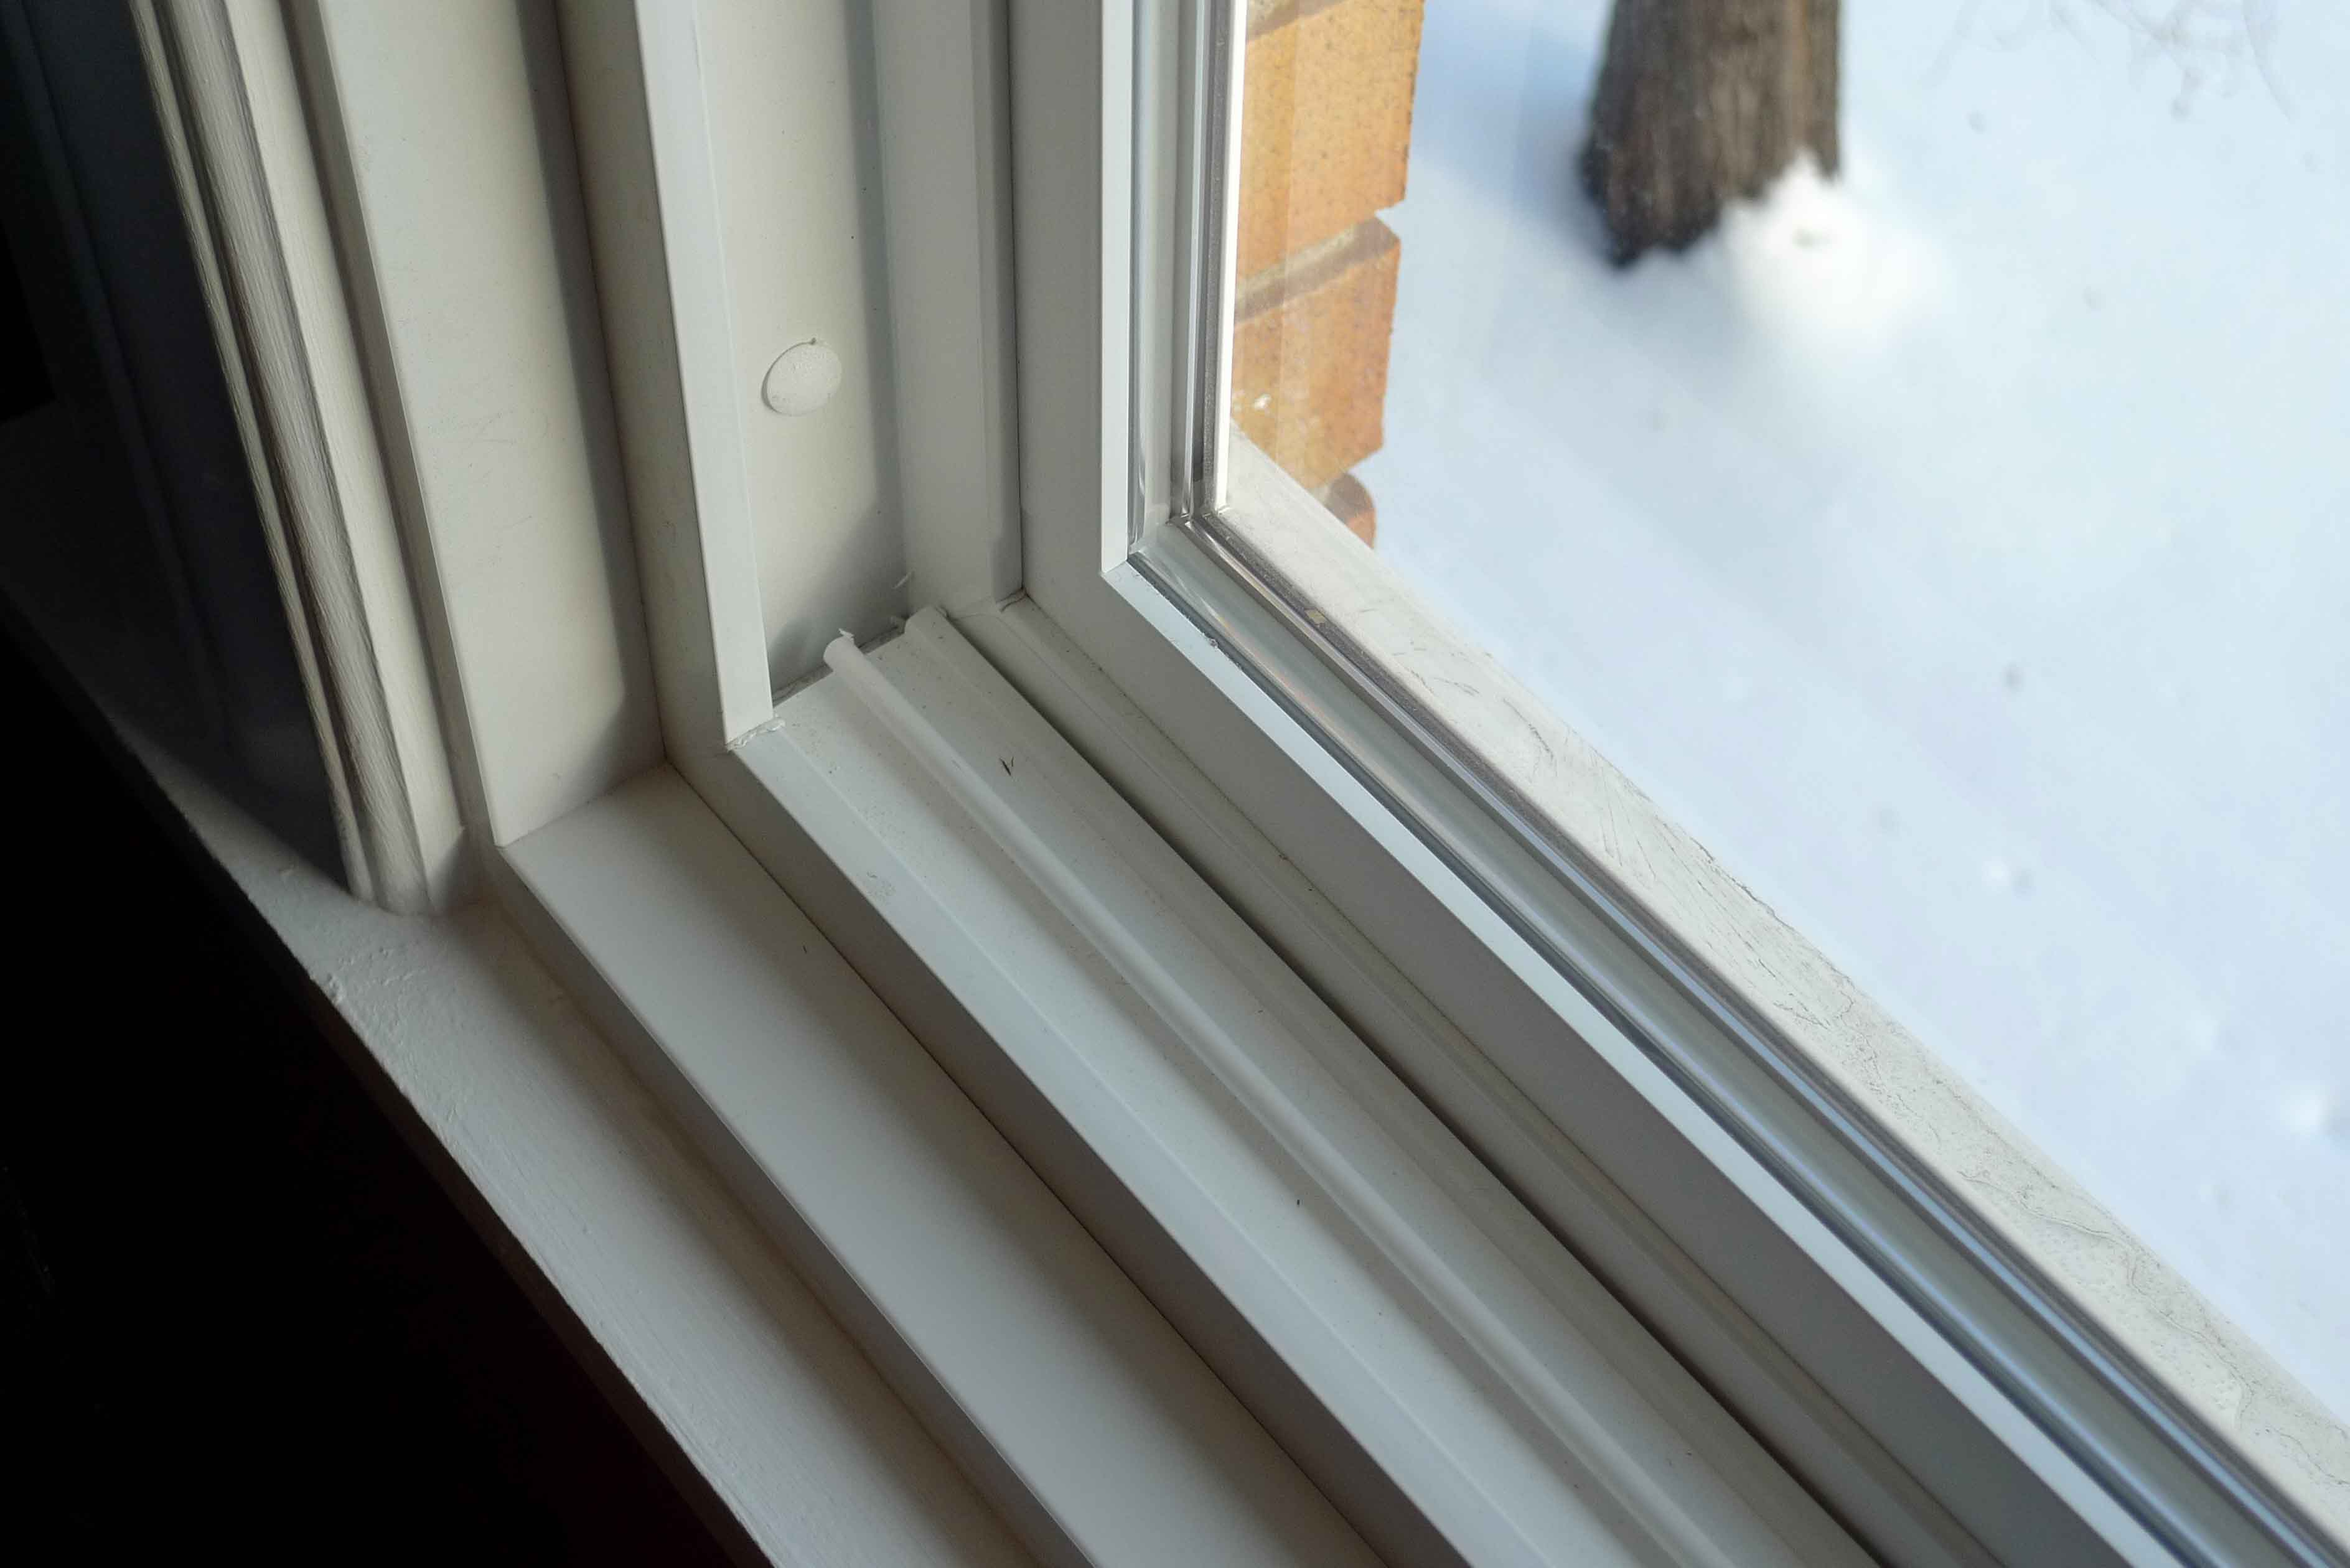 Vinyl Windows - Should You Get Your Windows Replaced?